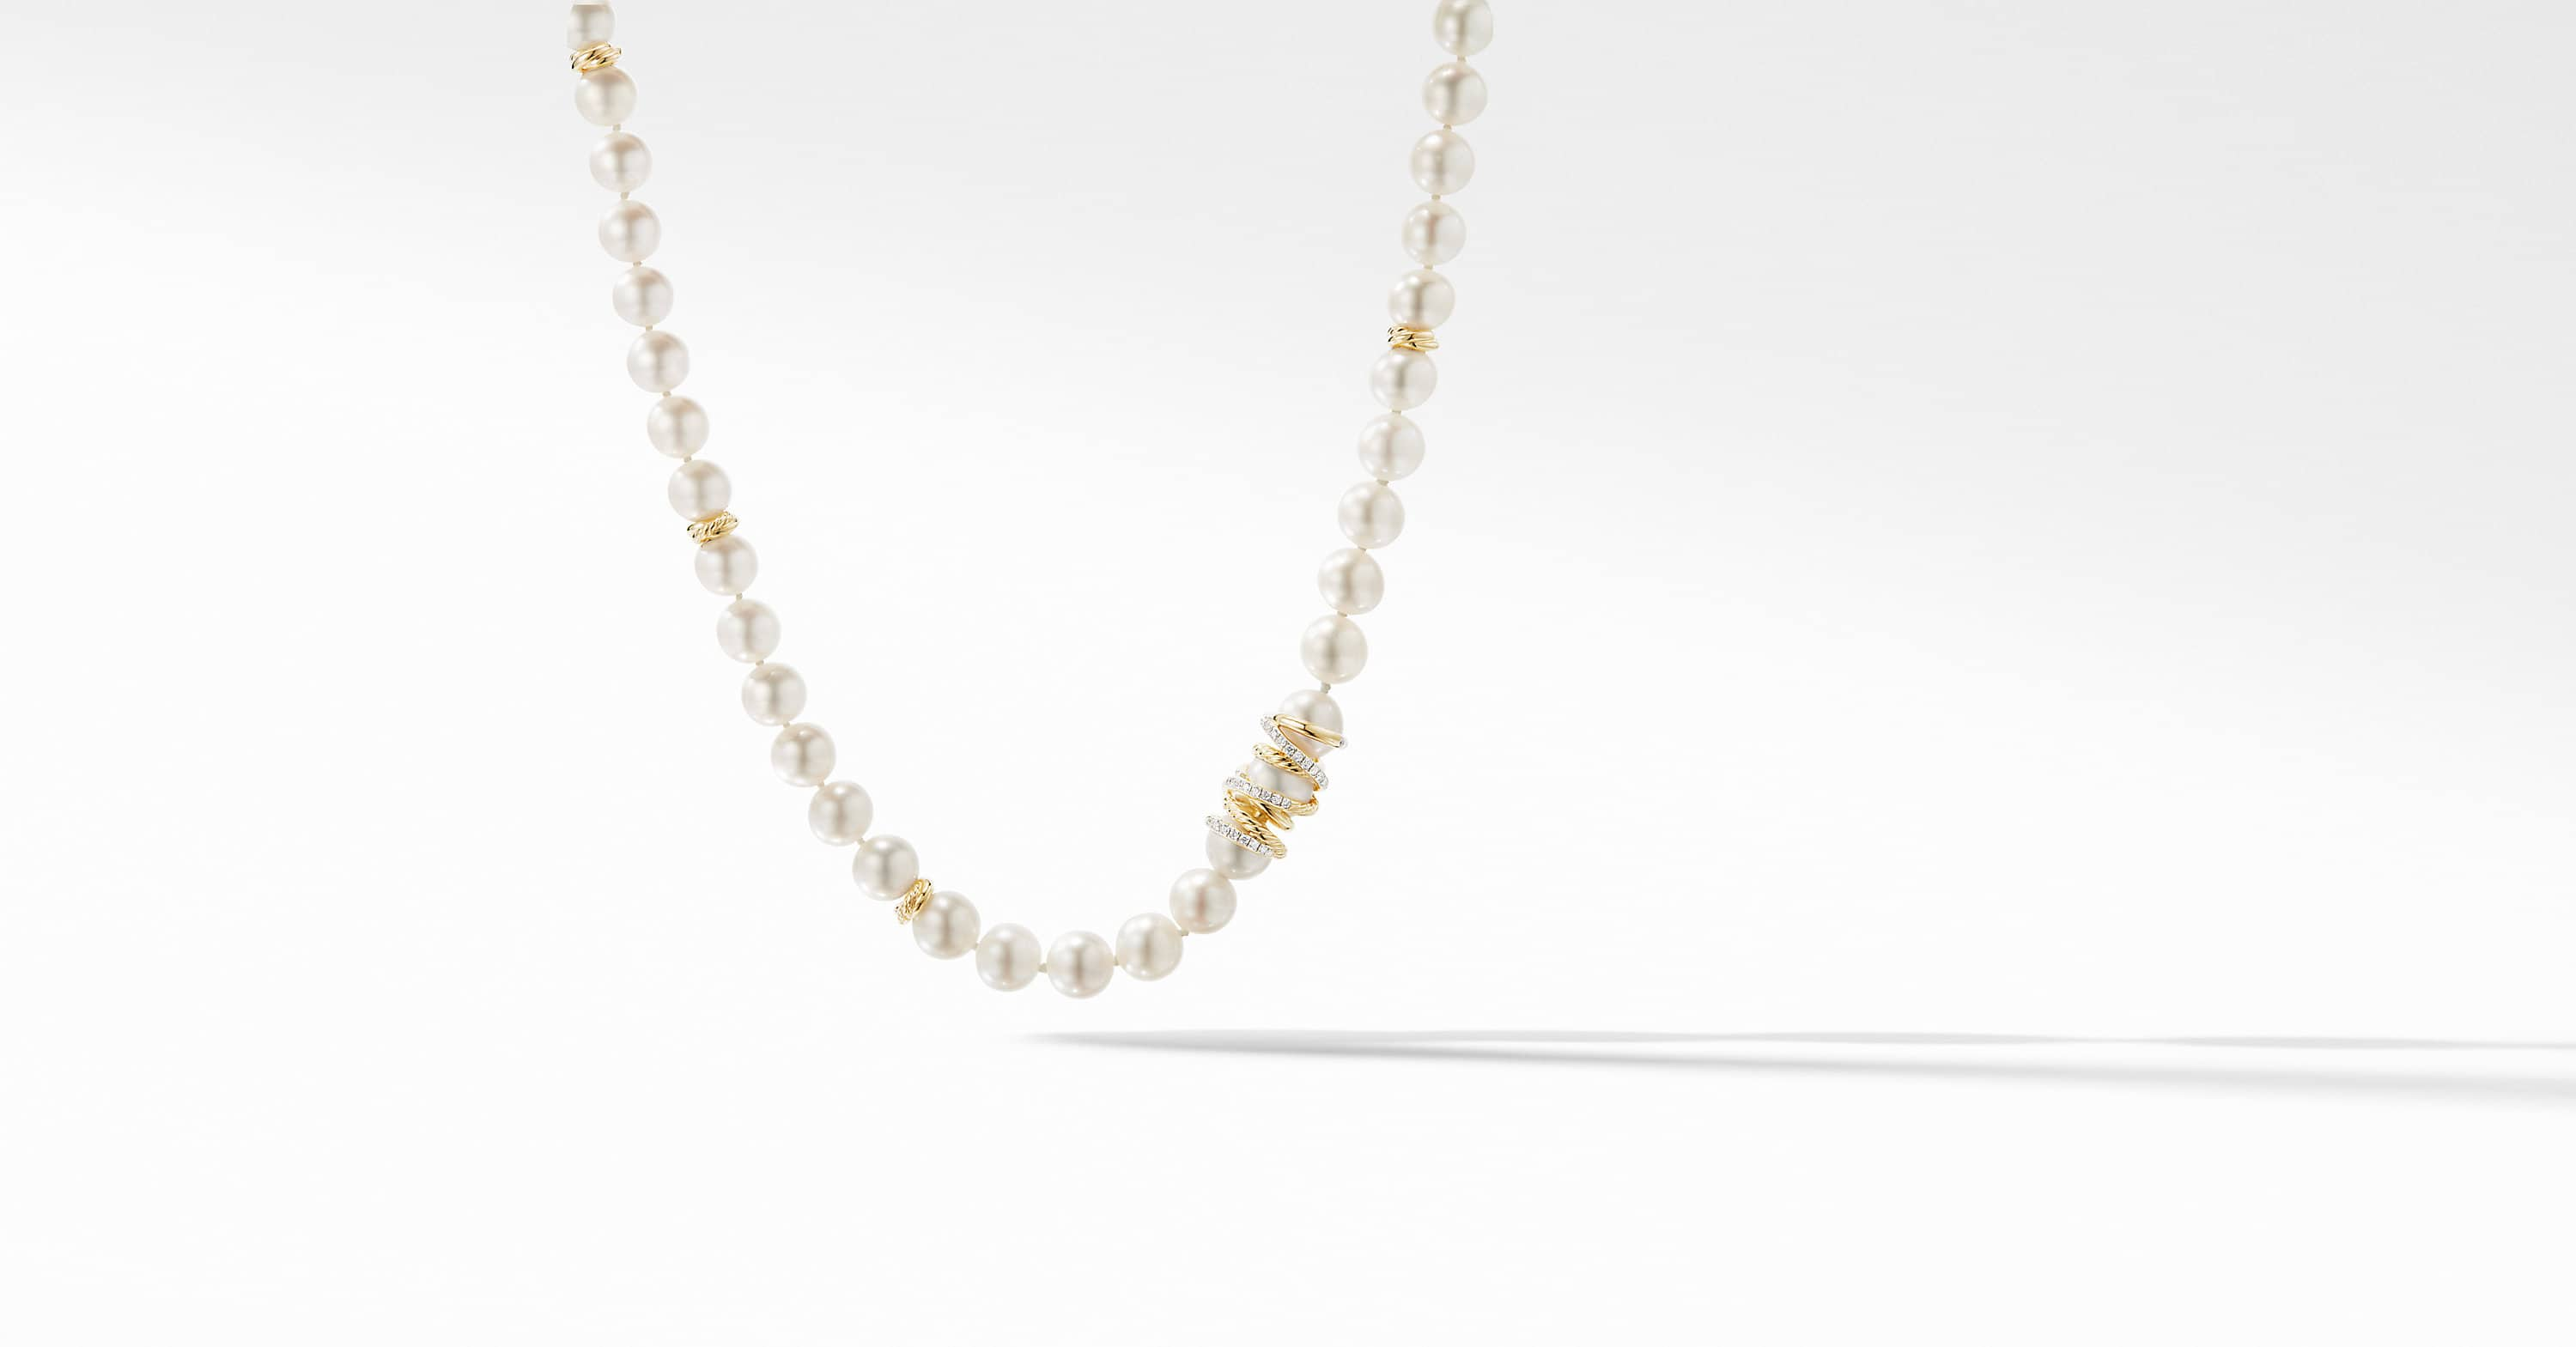 Collier de perles Helena en or jaune 18 carats avec diamants